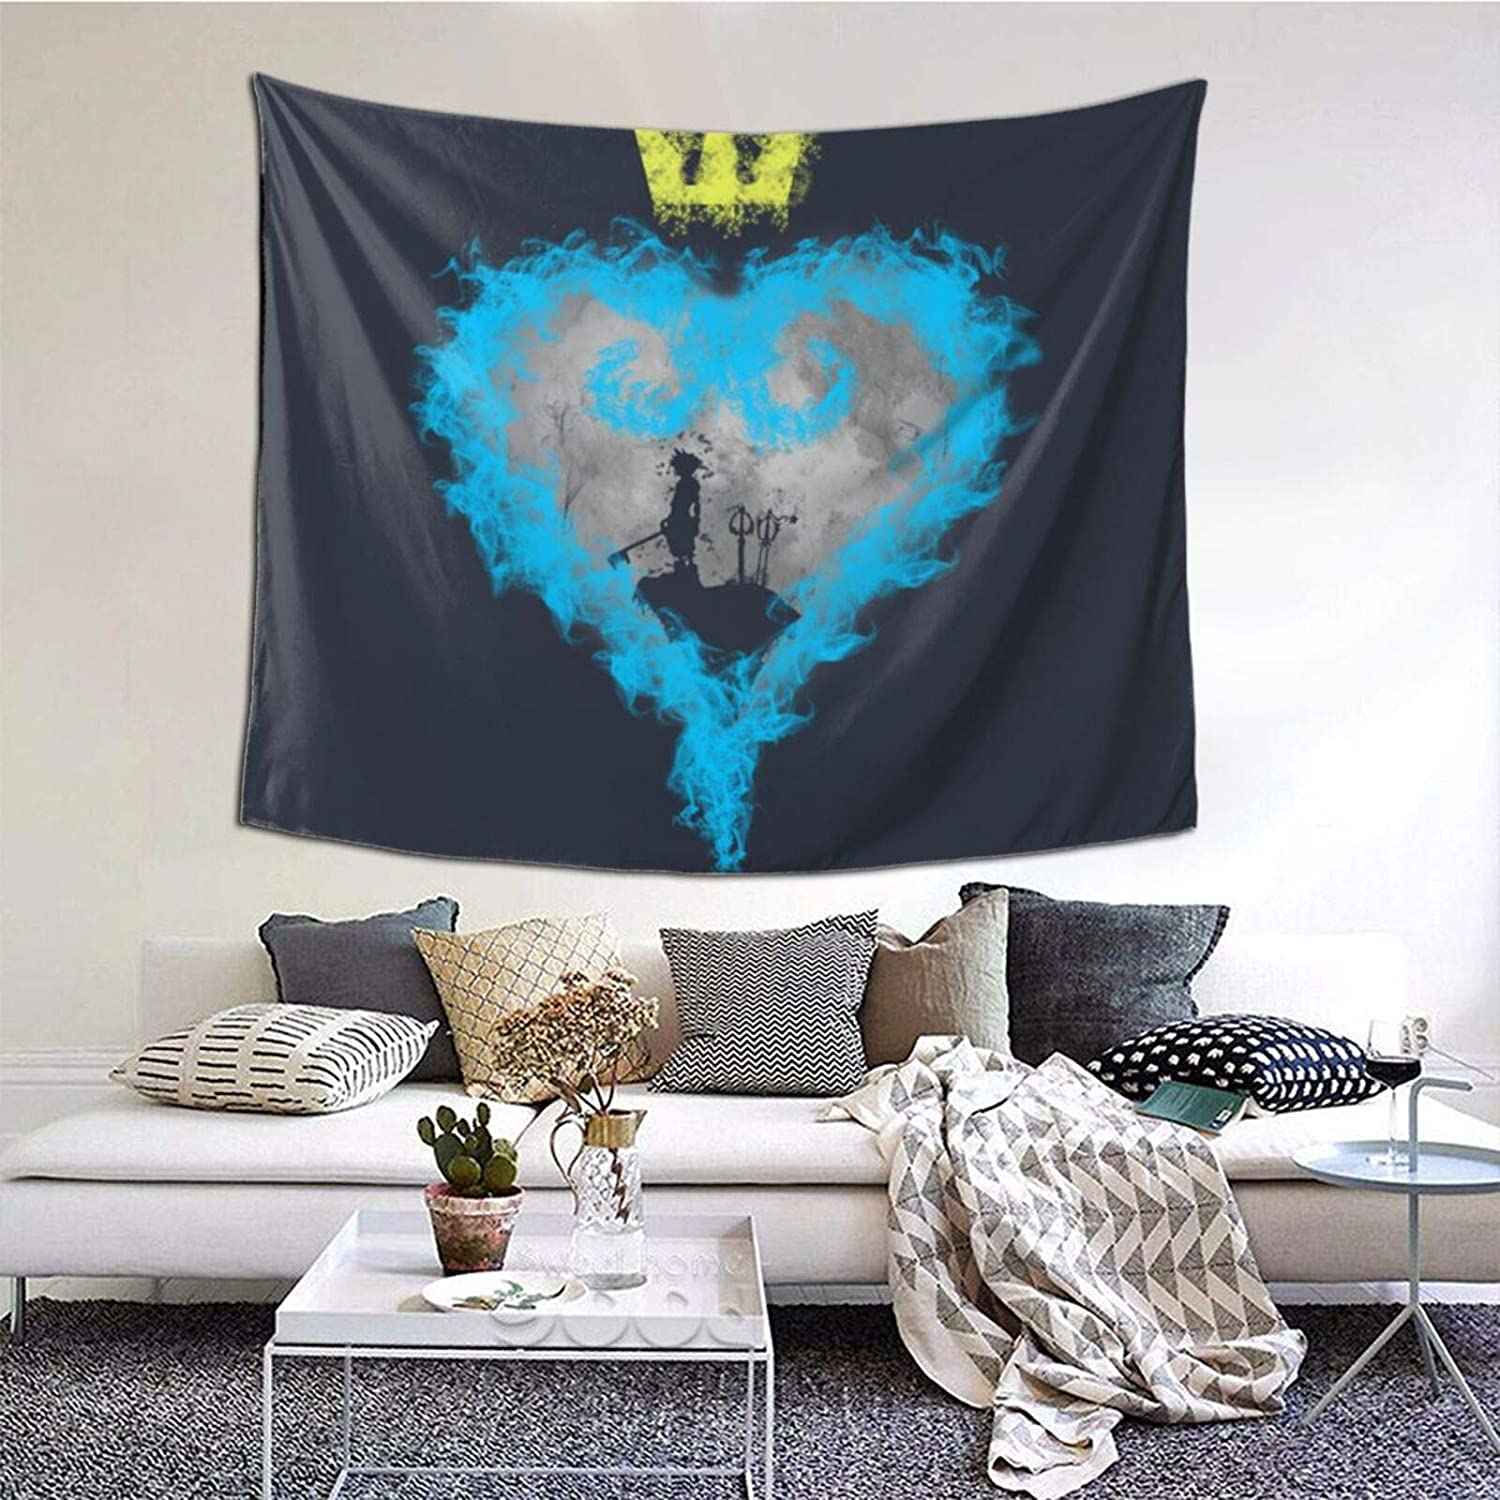 Tapestry Brave Heart Kingdom Hearteep Wall Tapestry Anime Fans Home Dorm Wall Decor 60x50 Inches